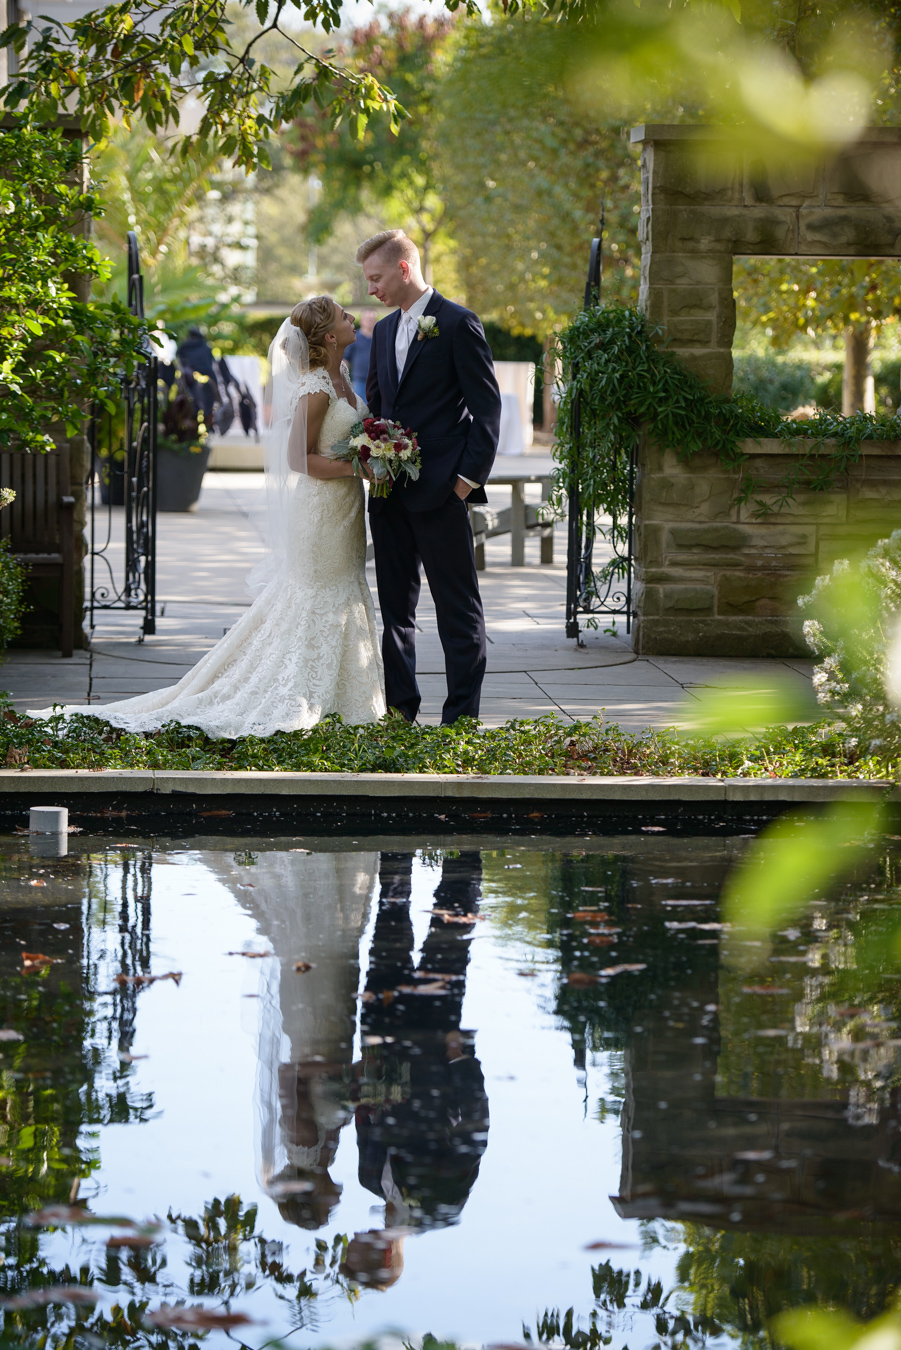 Bride and Groom at the reflecting pond at the Cleveland Botanical Garden